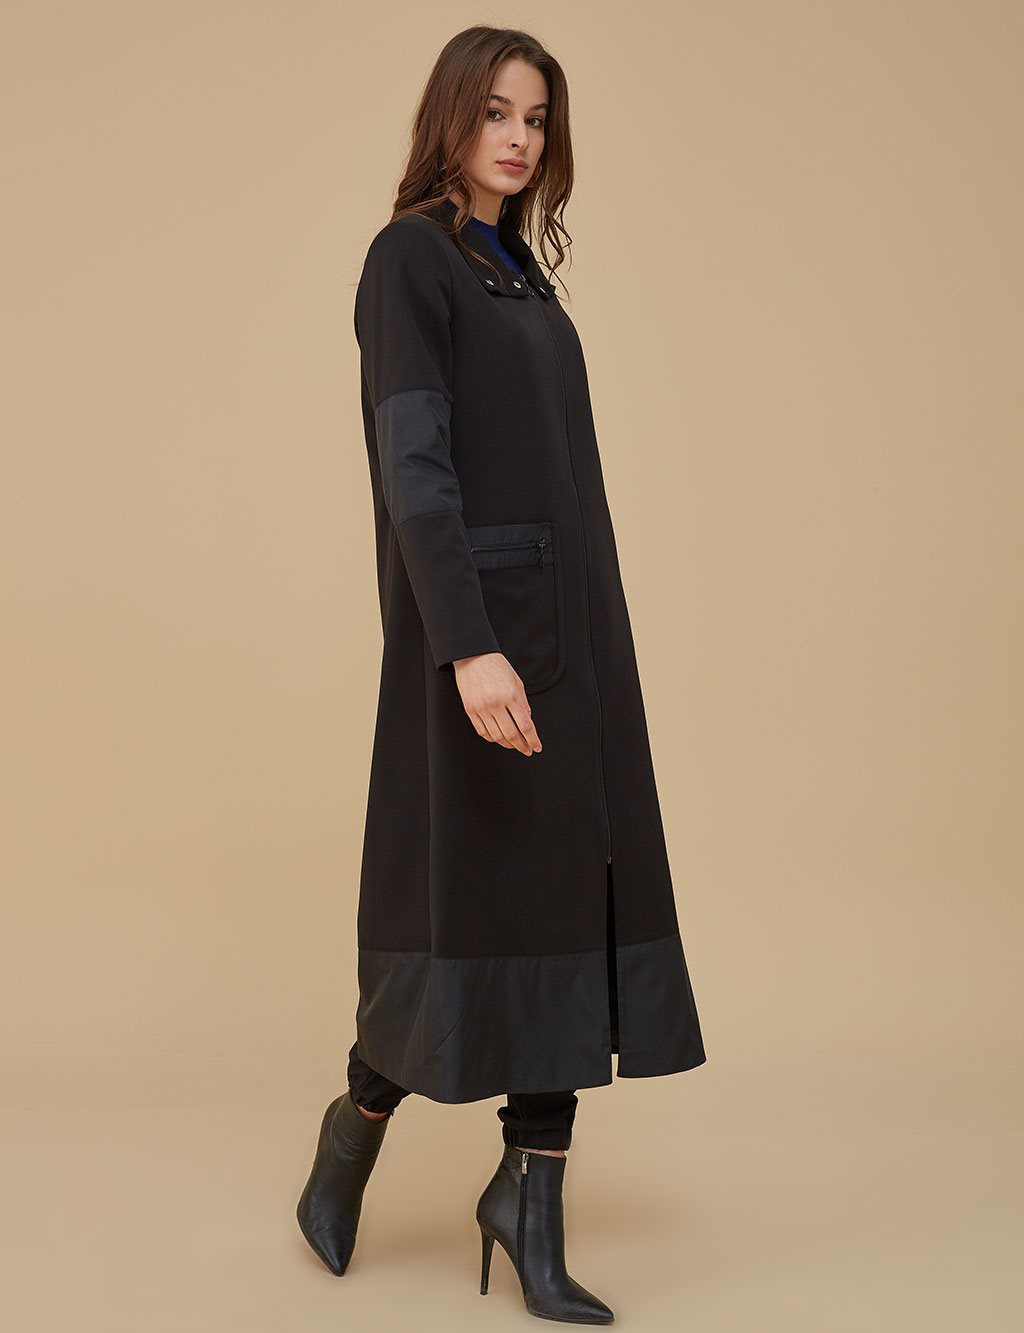 Pocket Detailed Coat With Zipper A9 17082 Black